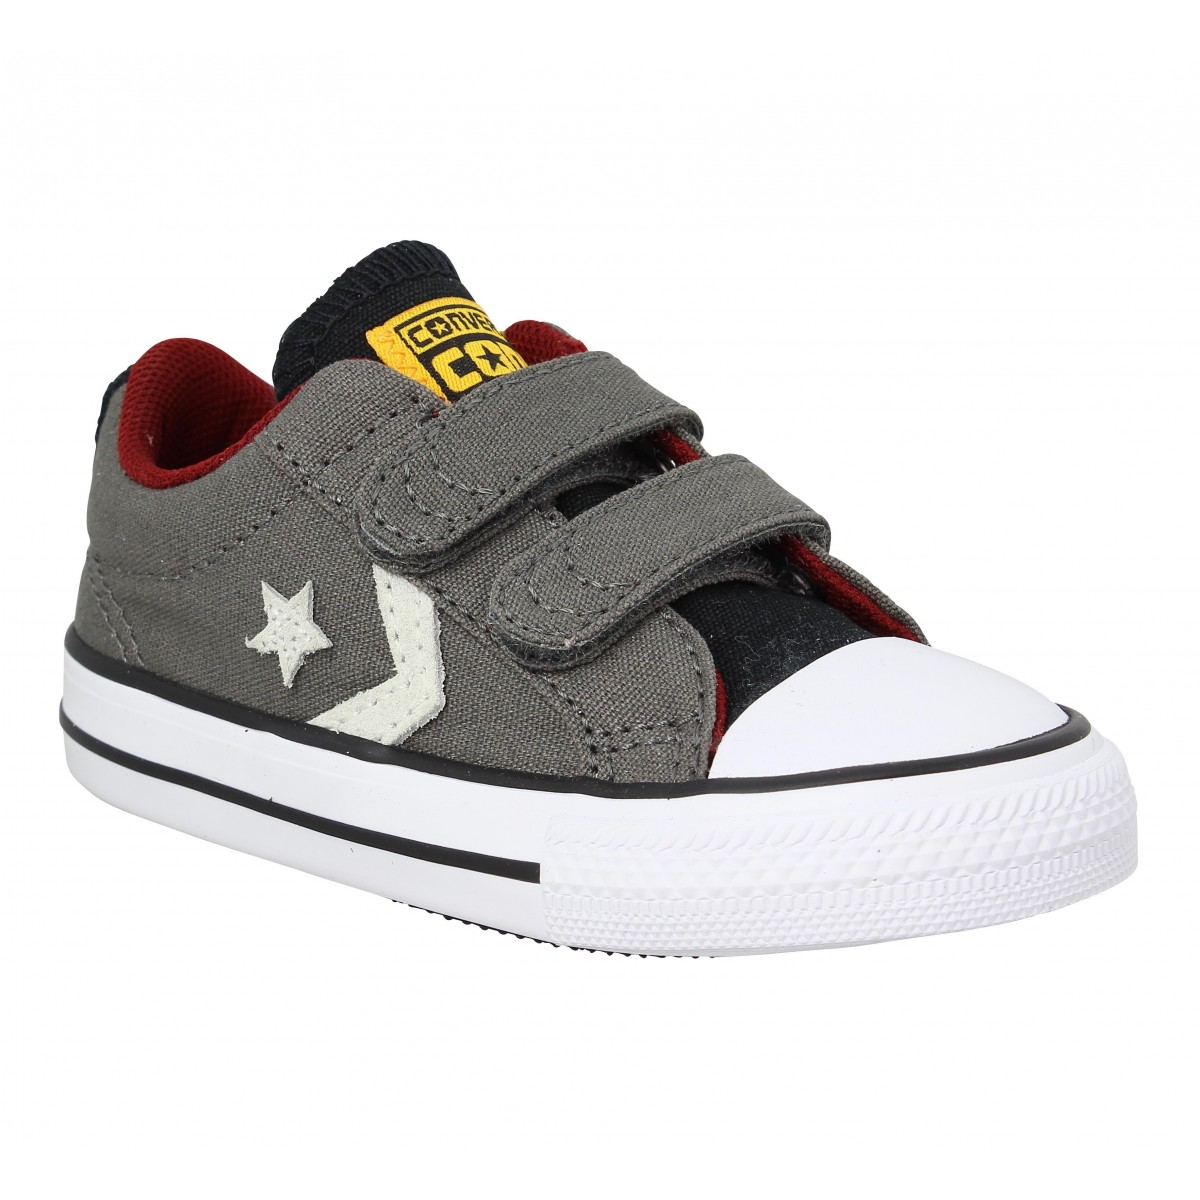 Baskets CONVERSE Star Player 2V toile Enfant Gris